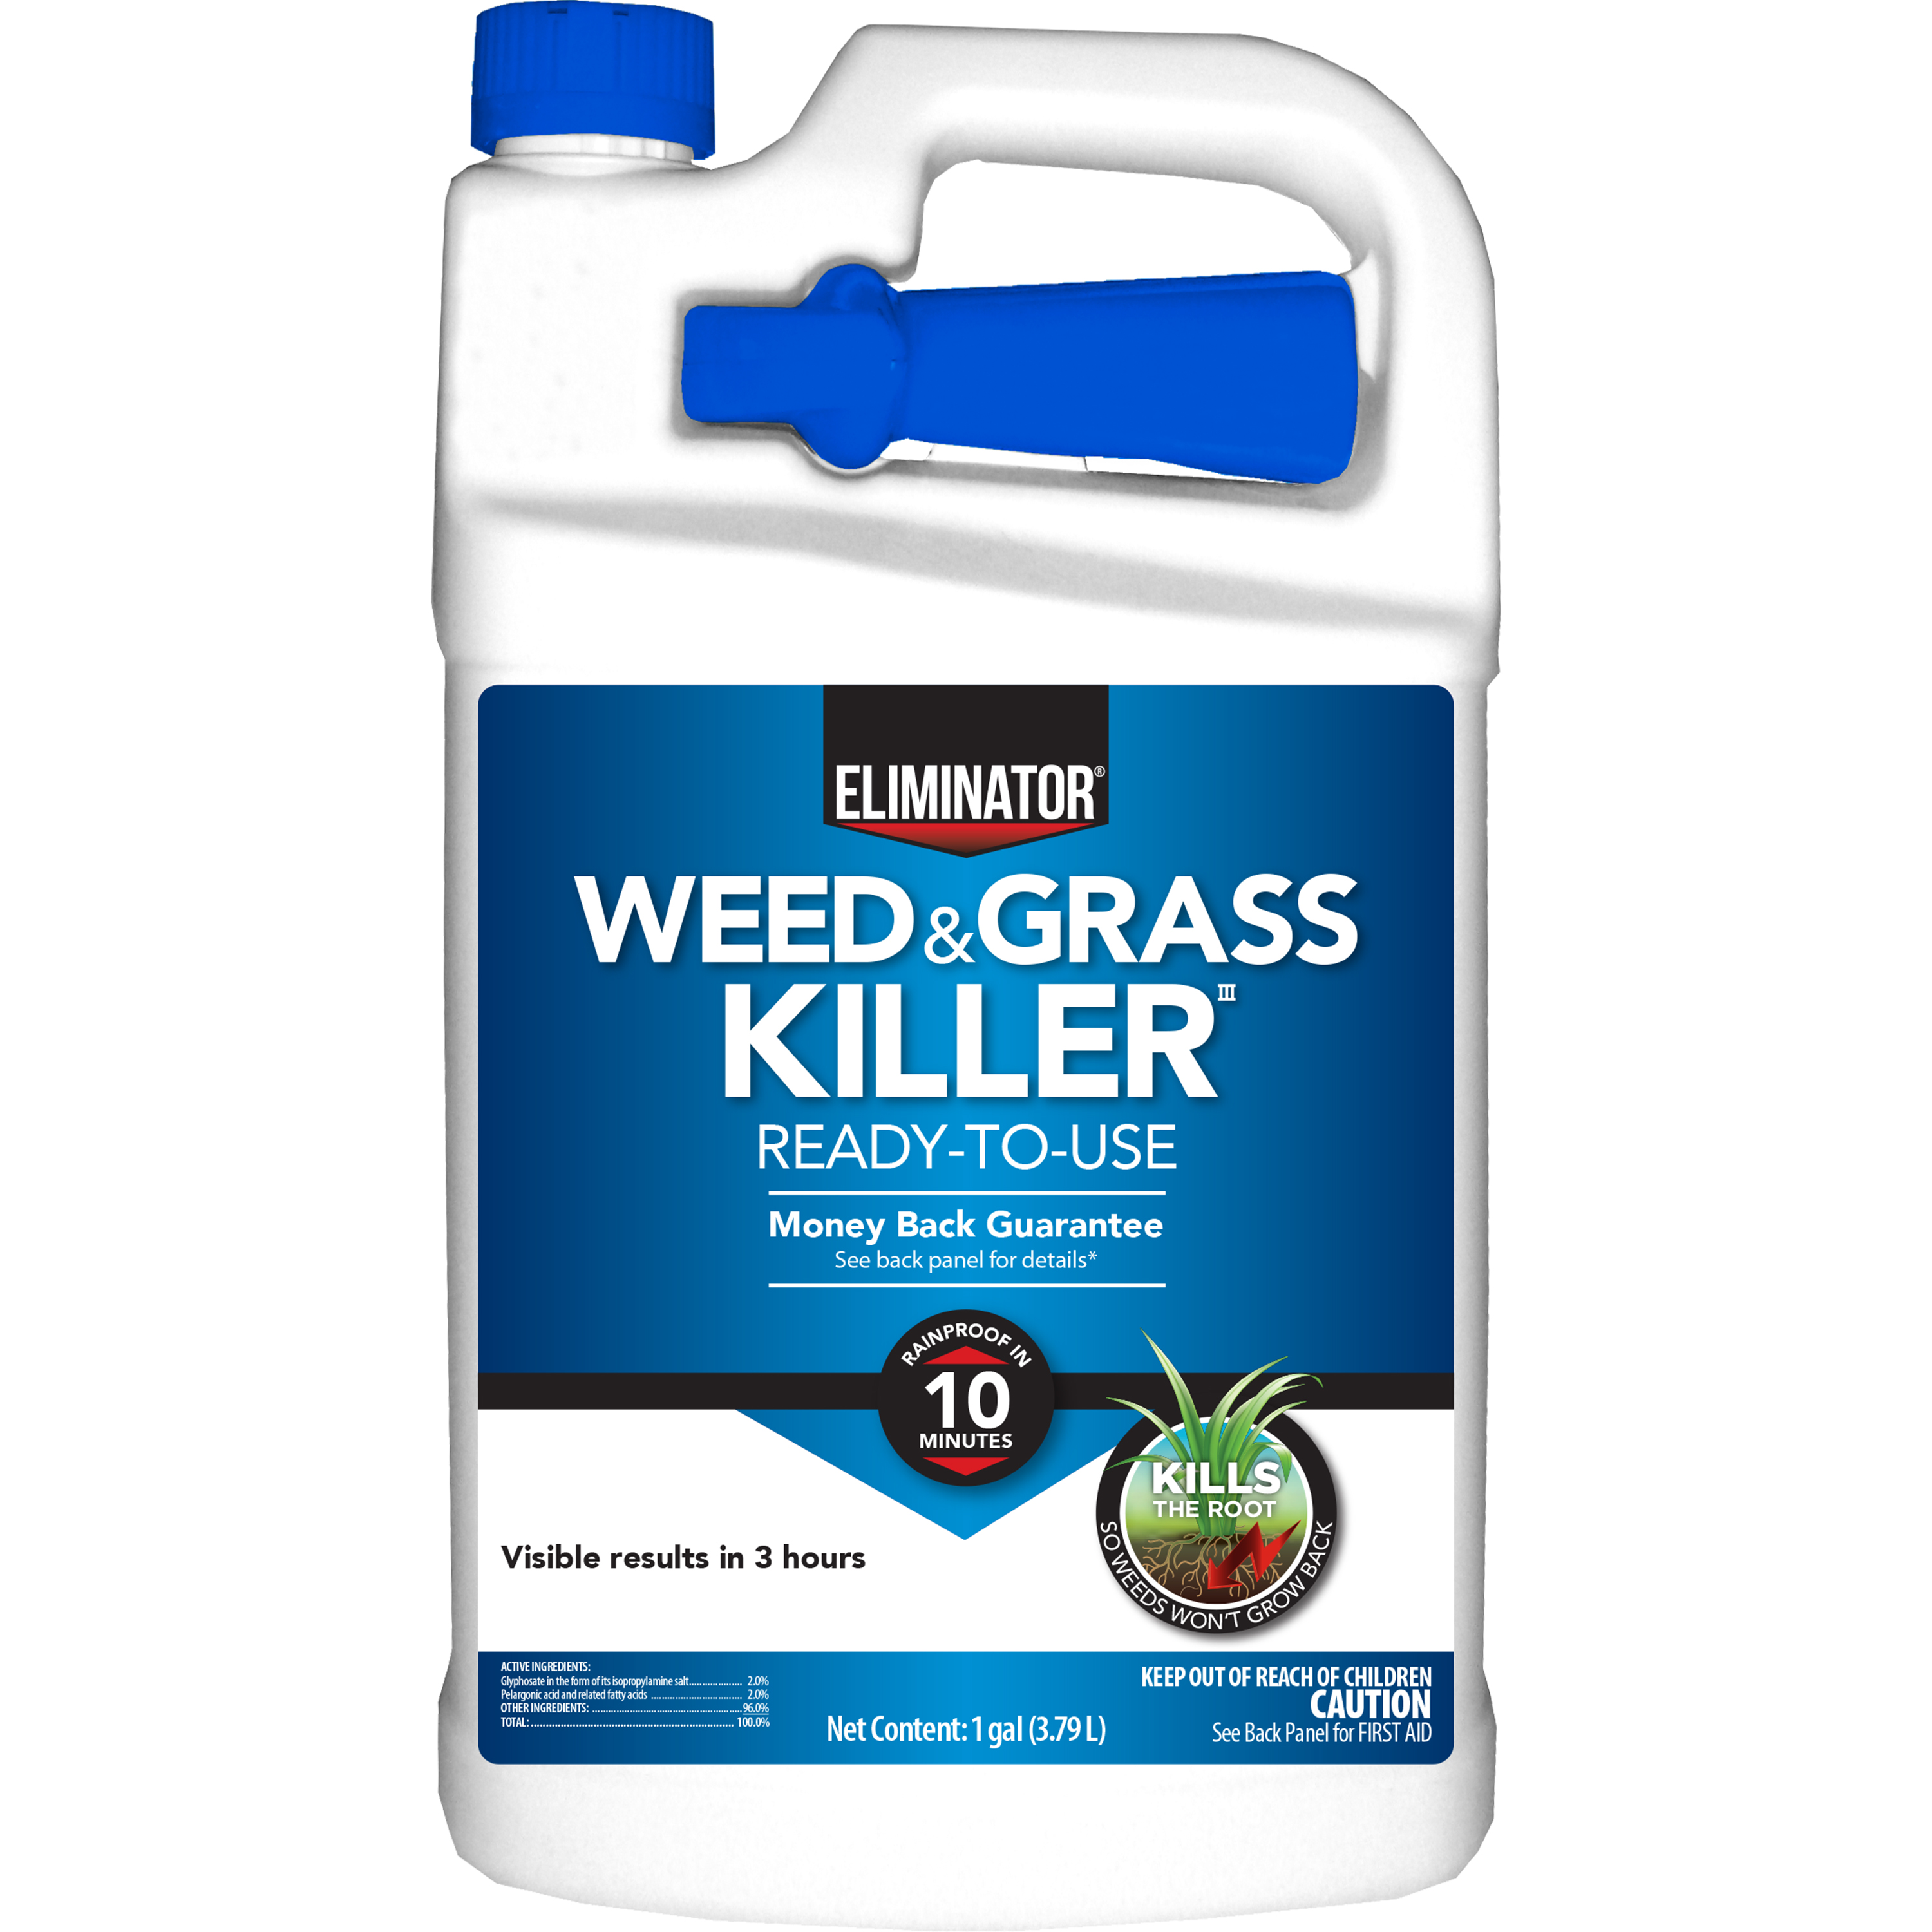 Eliminator Weed Grass Killer Iii Ready To Use 1 Gallon Buy Products Online With Ubuy Thailand In Affordable Prices 316196077